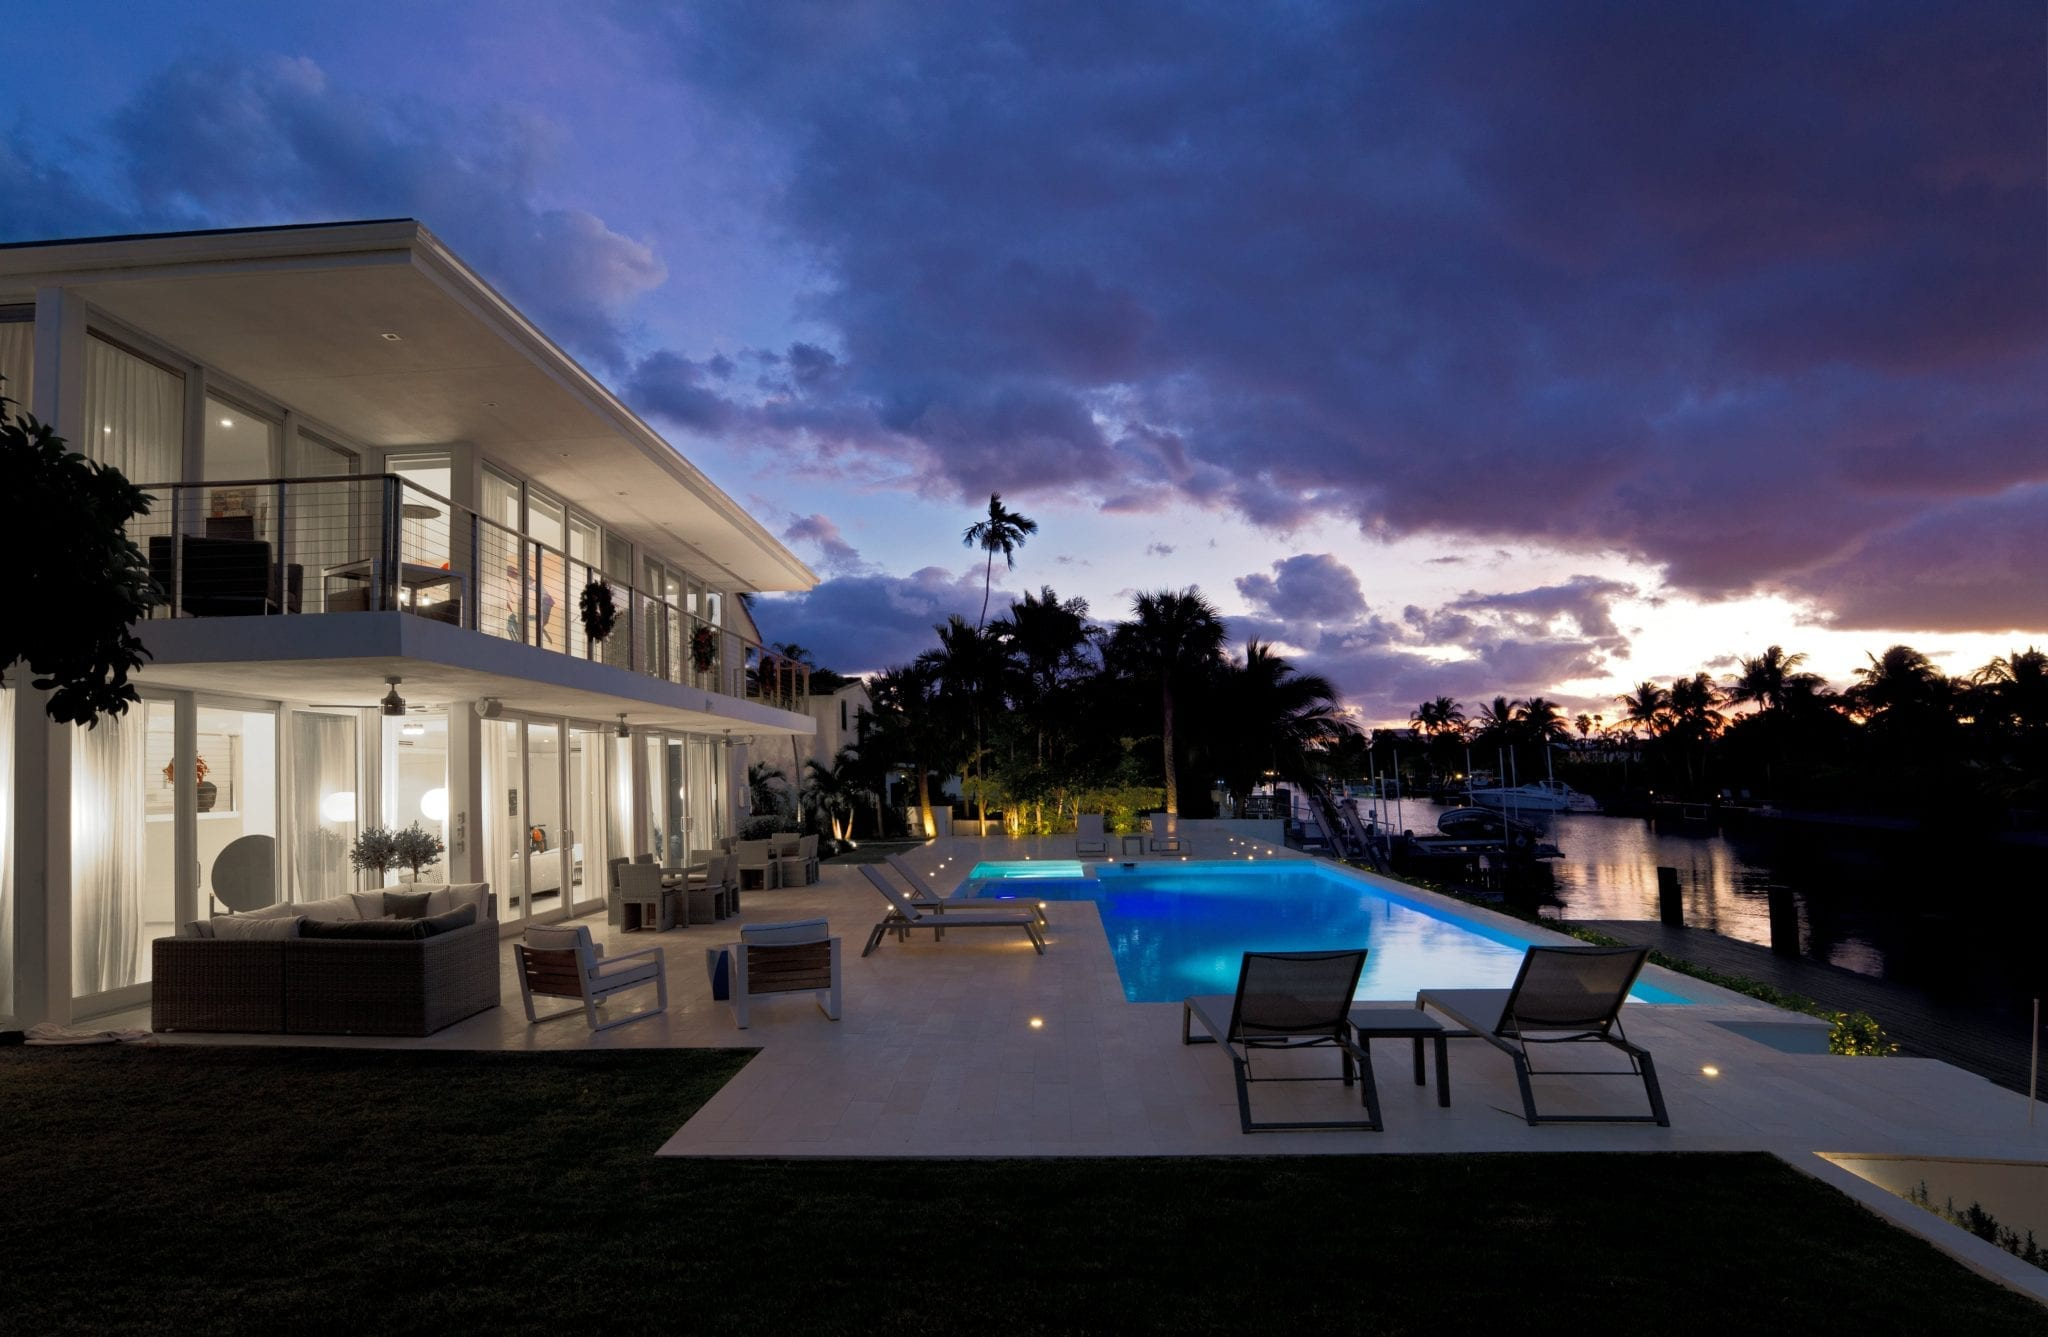 Private Villa in Miami Beach, Florida